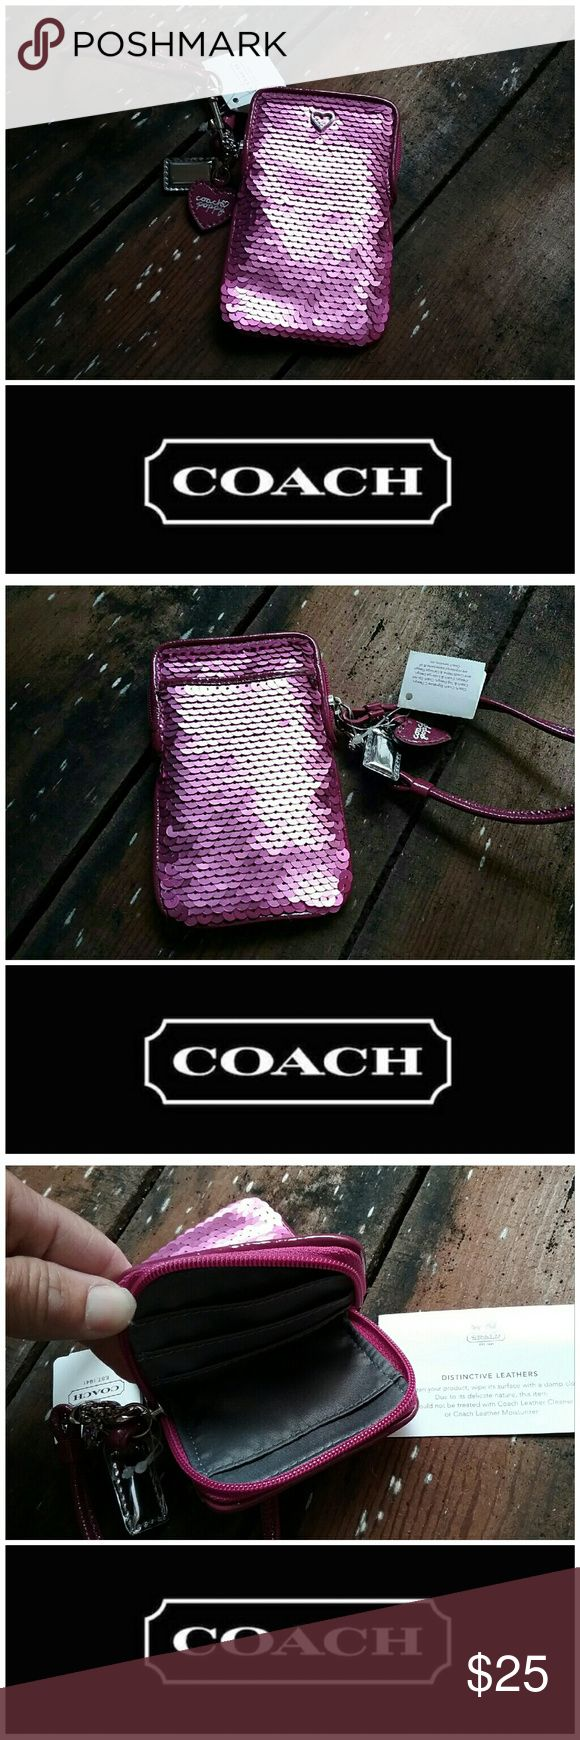 Coach Wristlet **NWT** Perfect spring color I would say it's too small for a phone. Good use for keys lipstick and credit card/cash. This would make a great easter gift for a young girl. Coach Bags Clutches & Wristlets